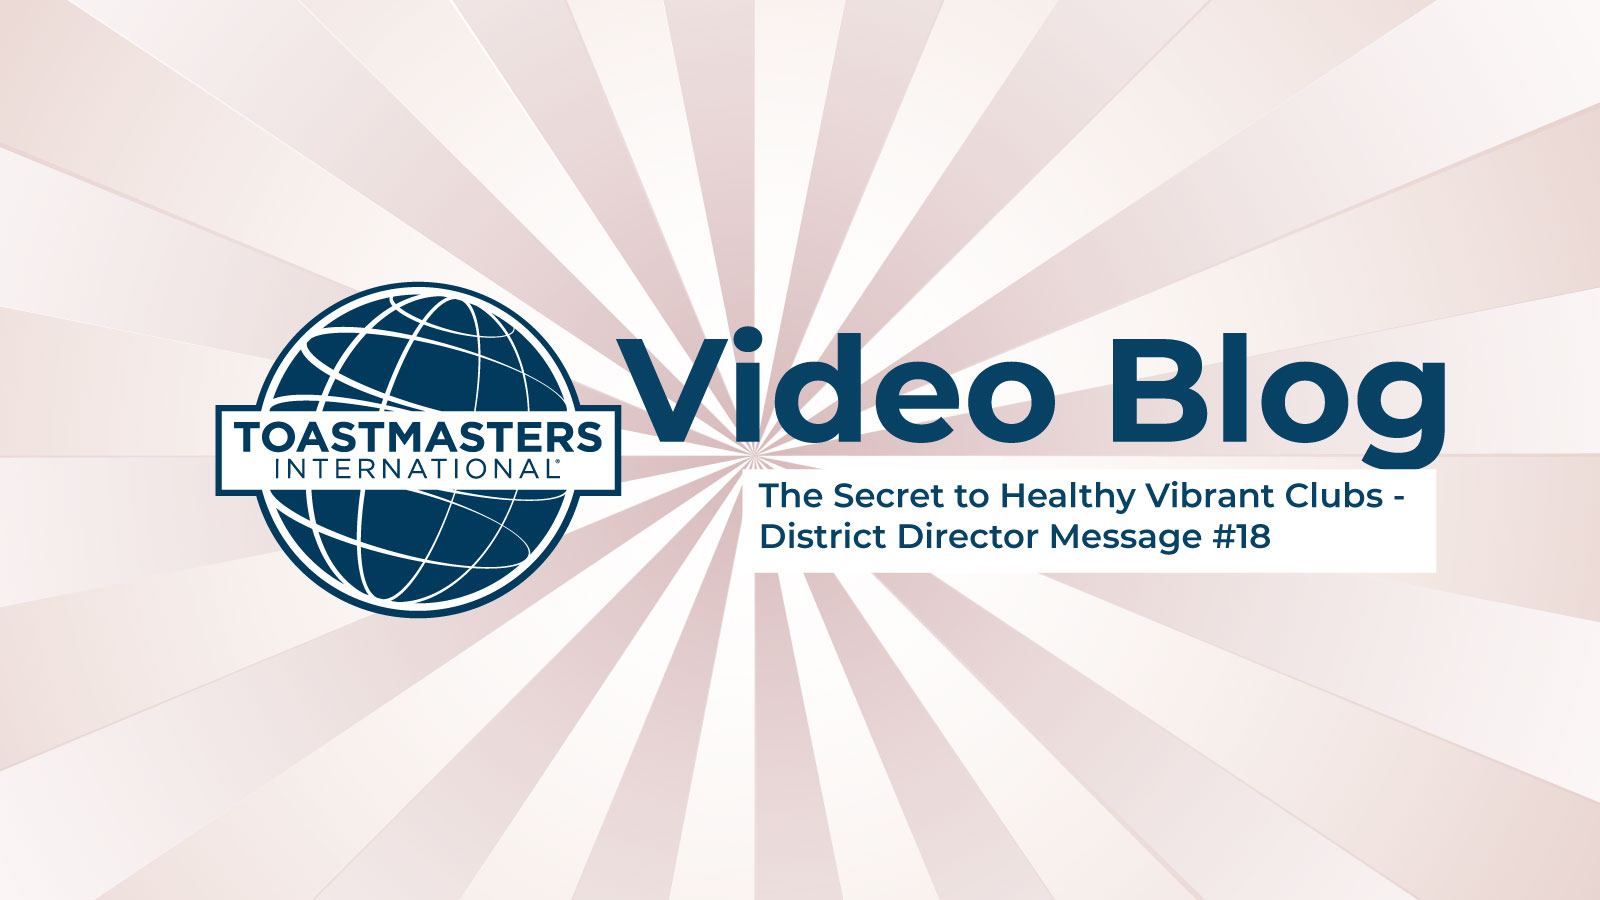 The Secret to Healthy Vibrant Clubs – District Director #18